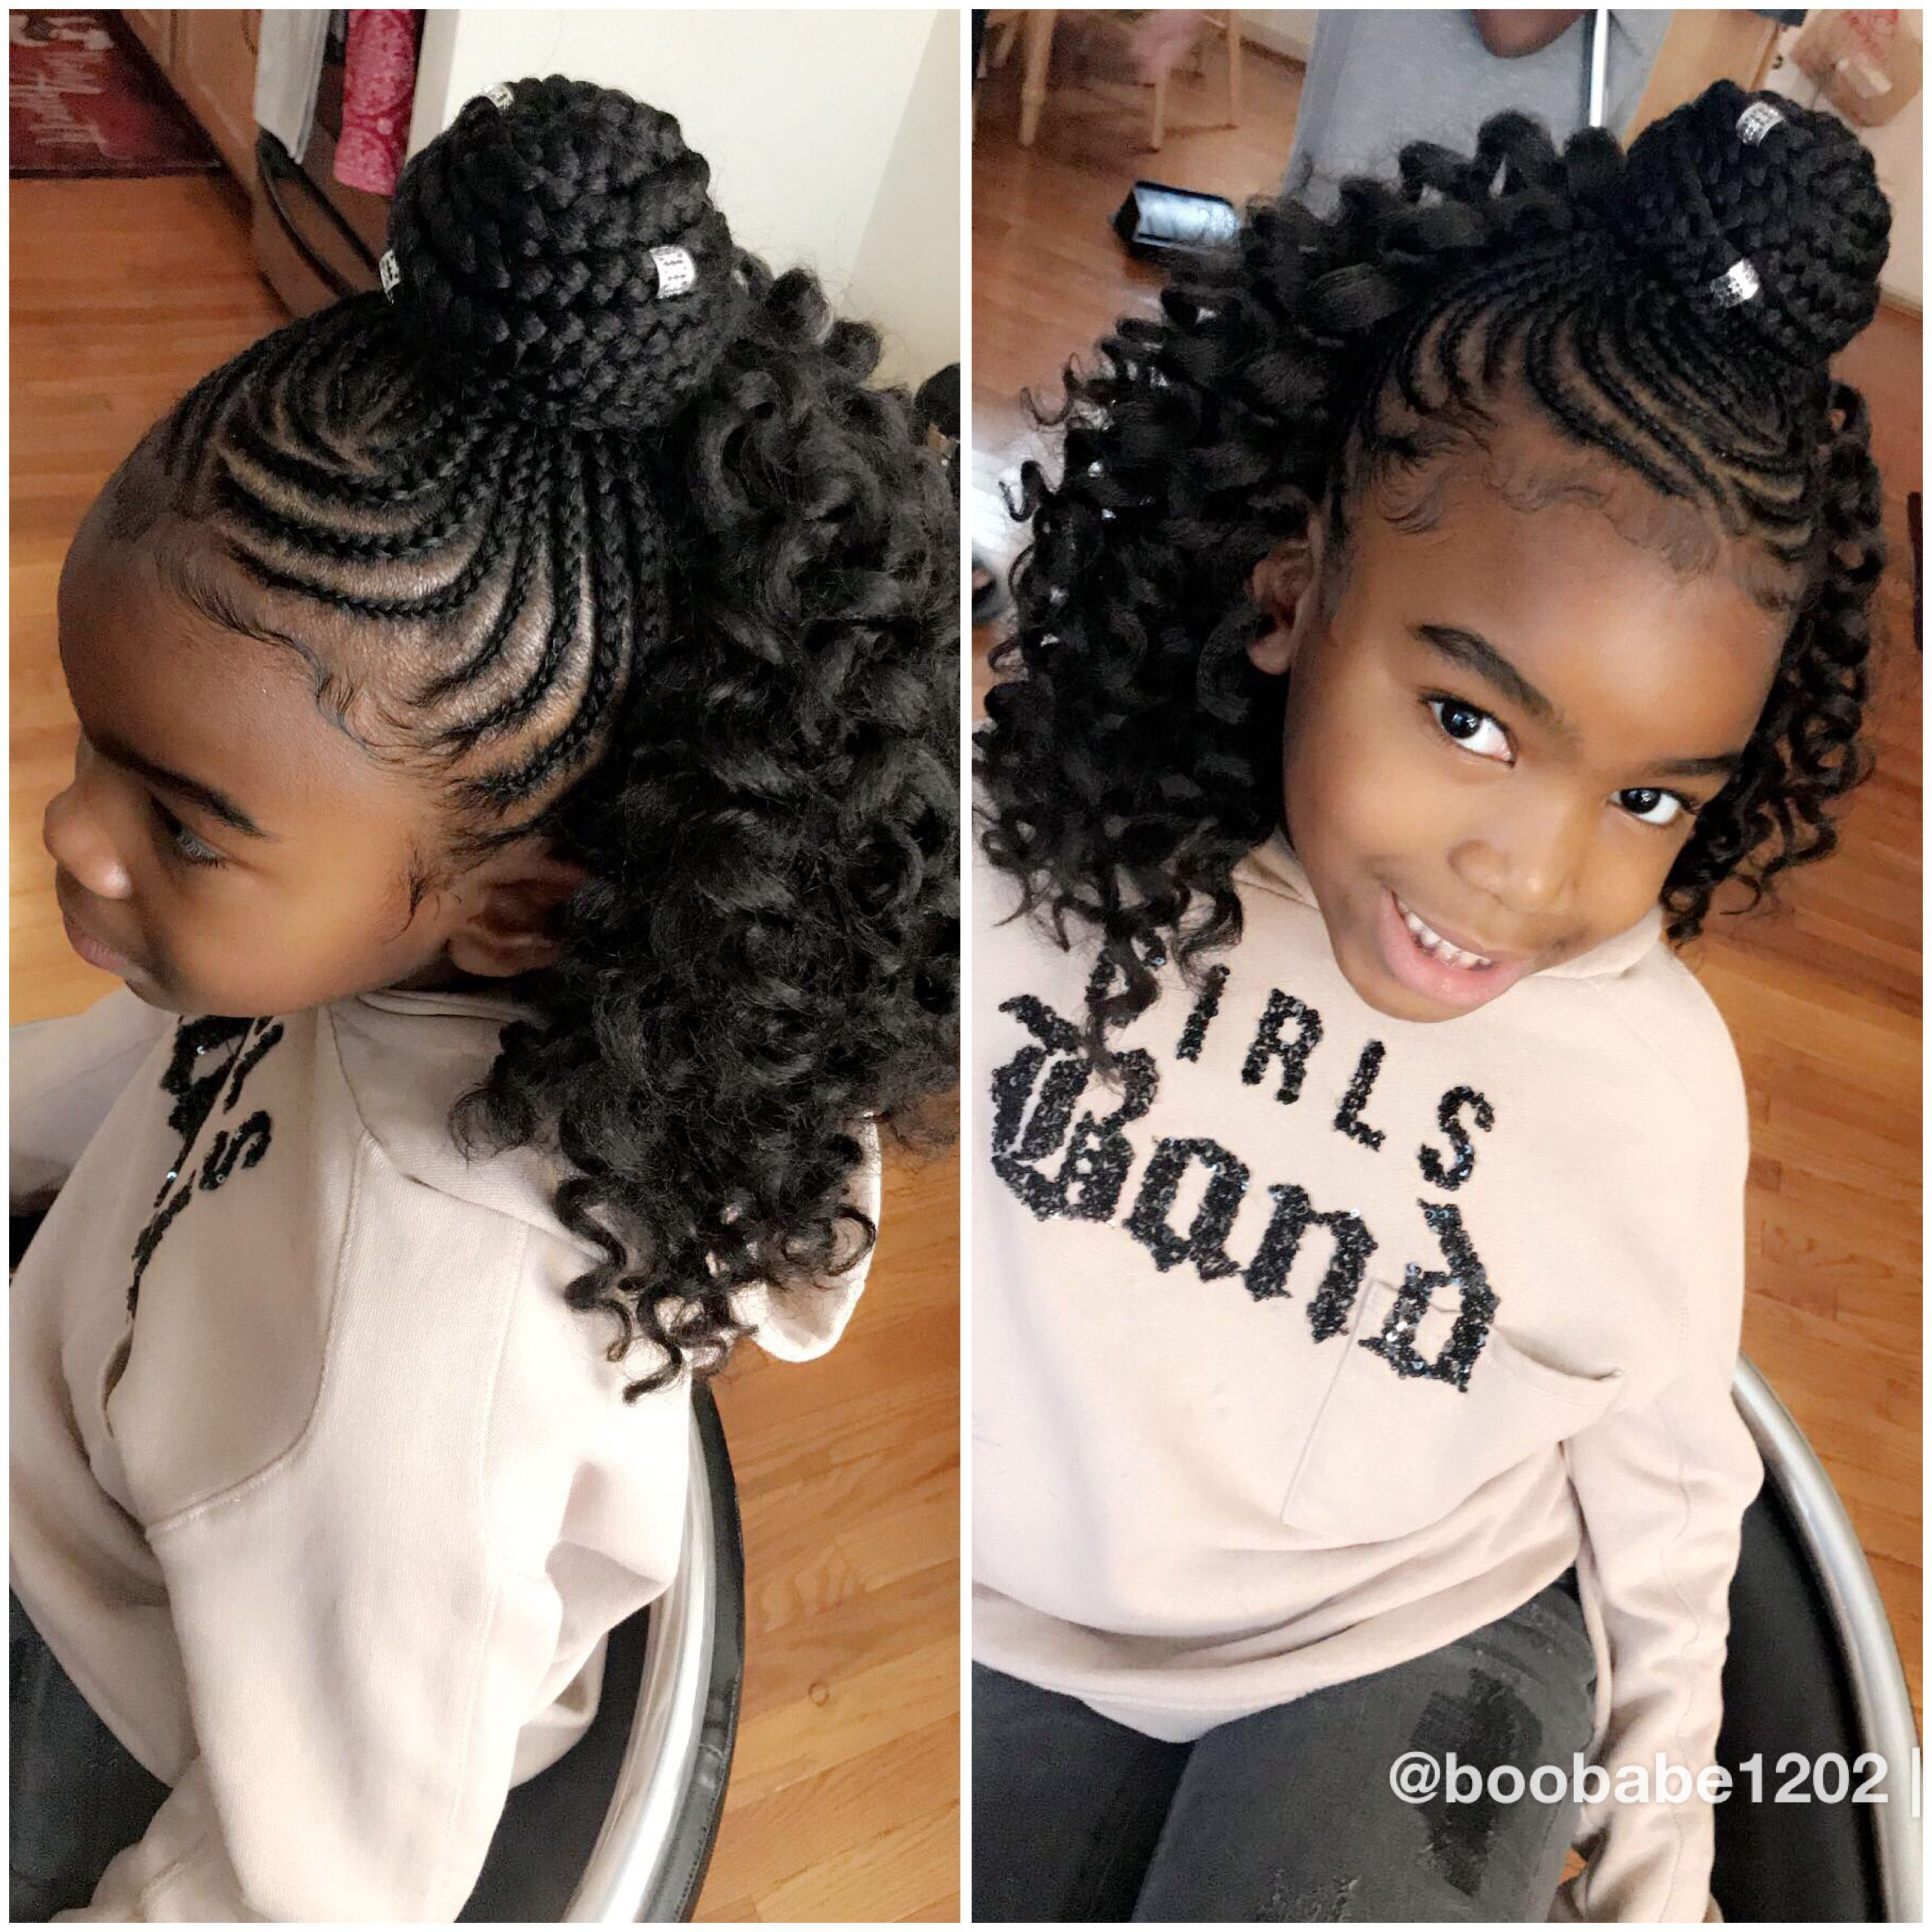 Black girl hairstyles braids clipart banner royalty free library Hairstyles | Girls Hair & Fashions | Kids braided hairstyles, Kid ... banner royalty free library